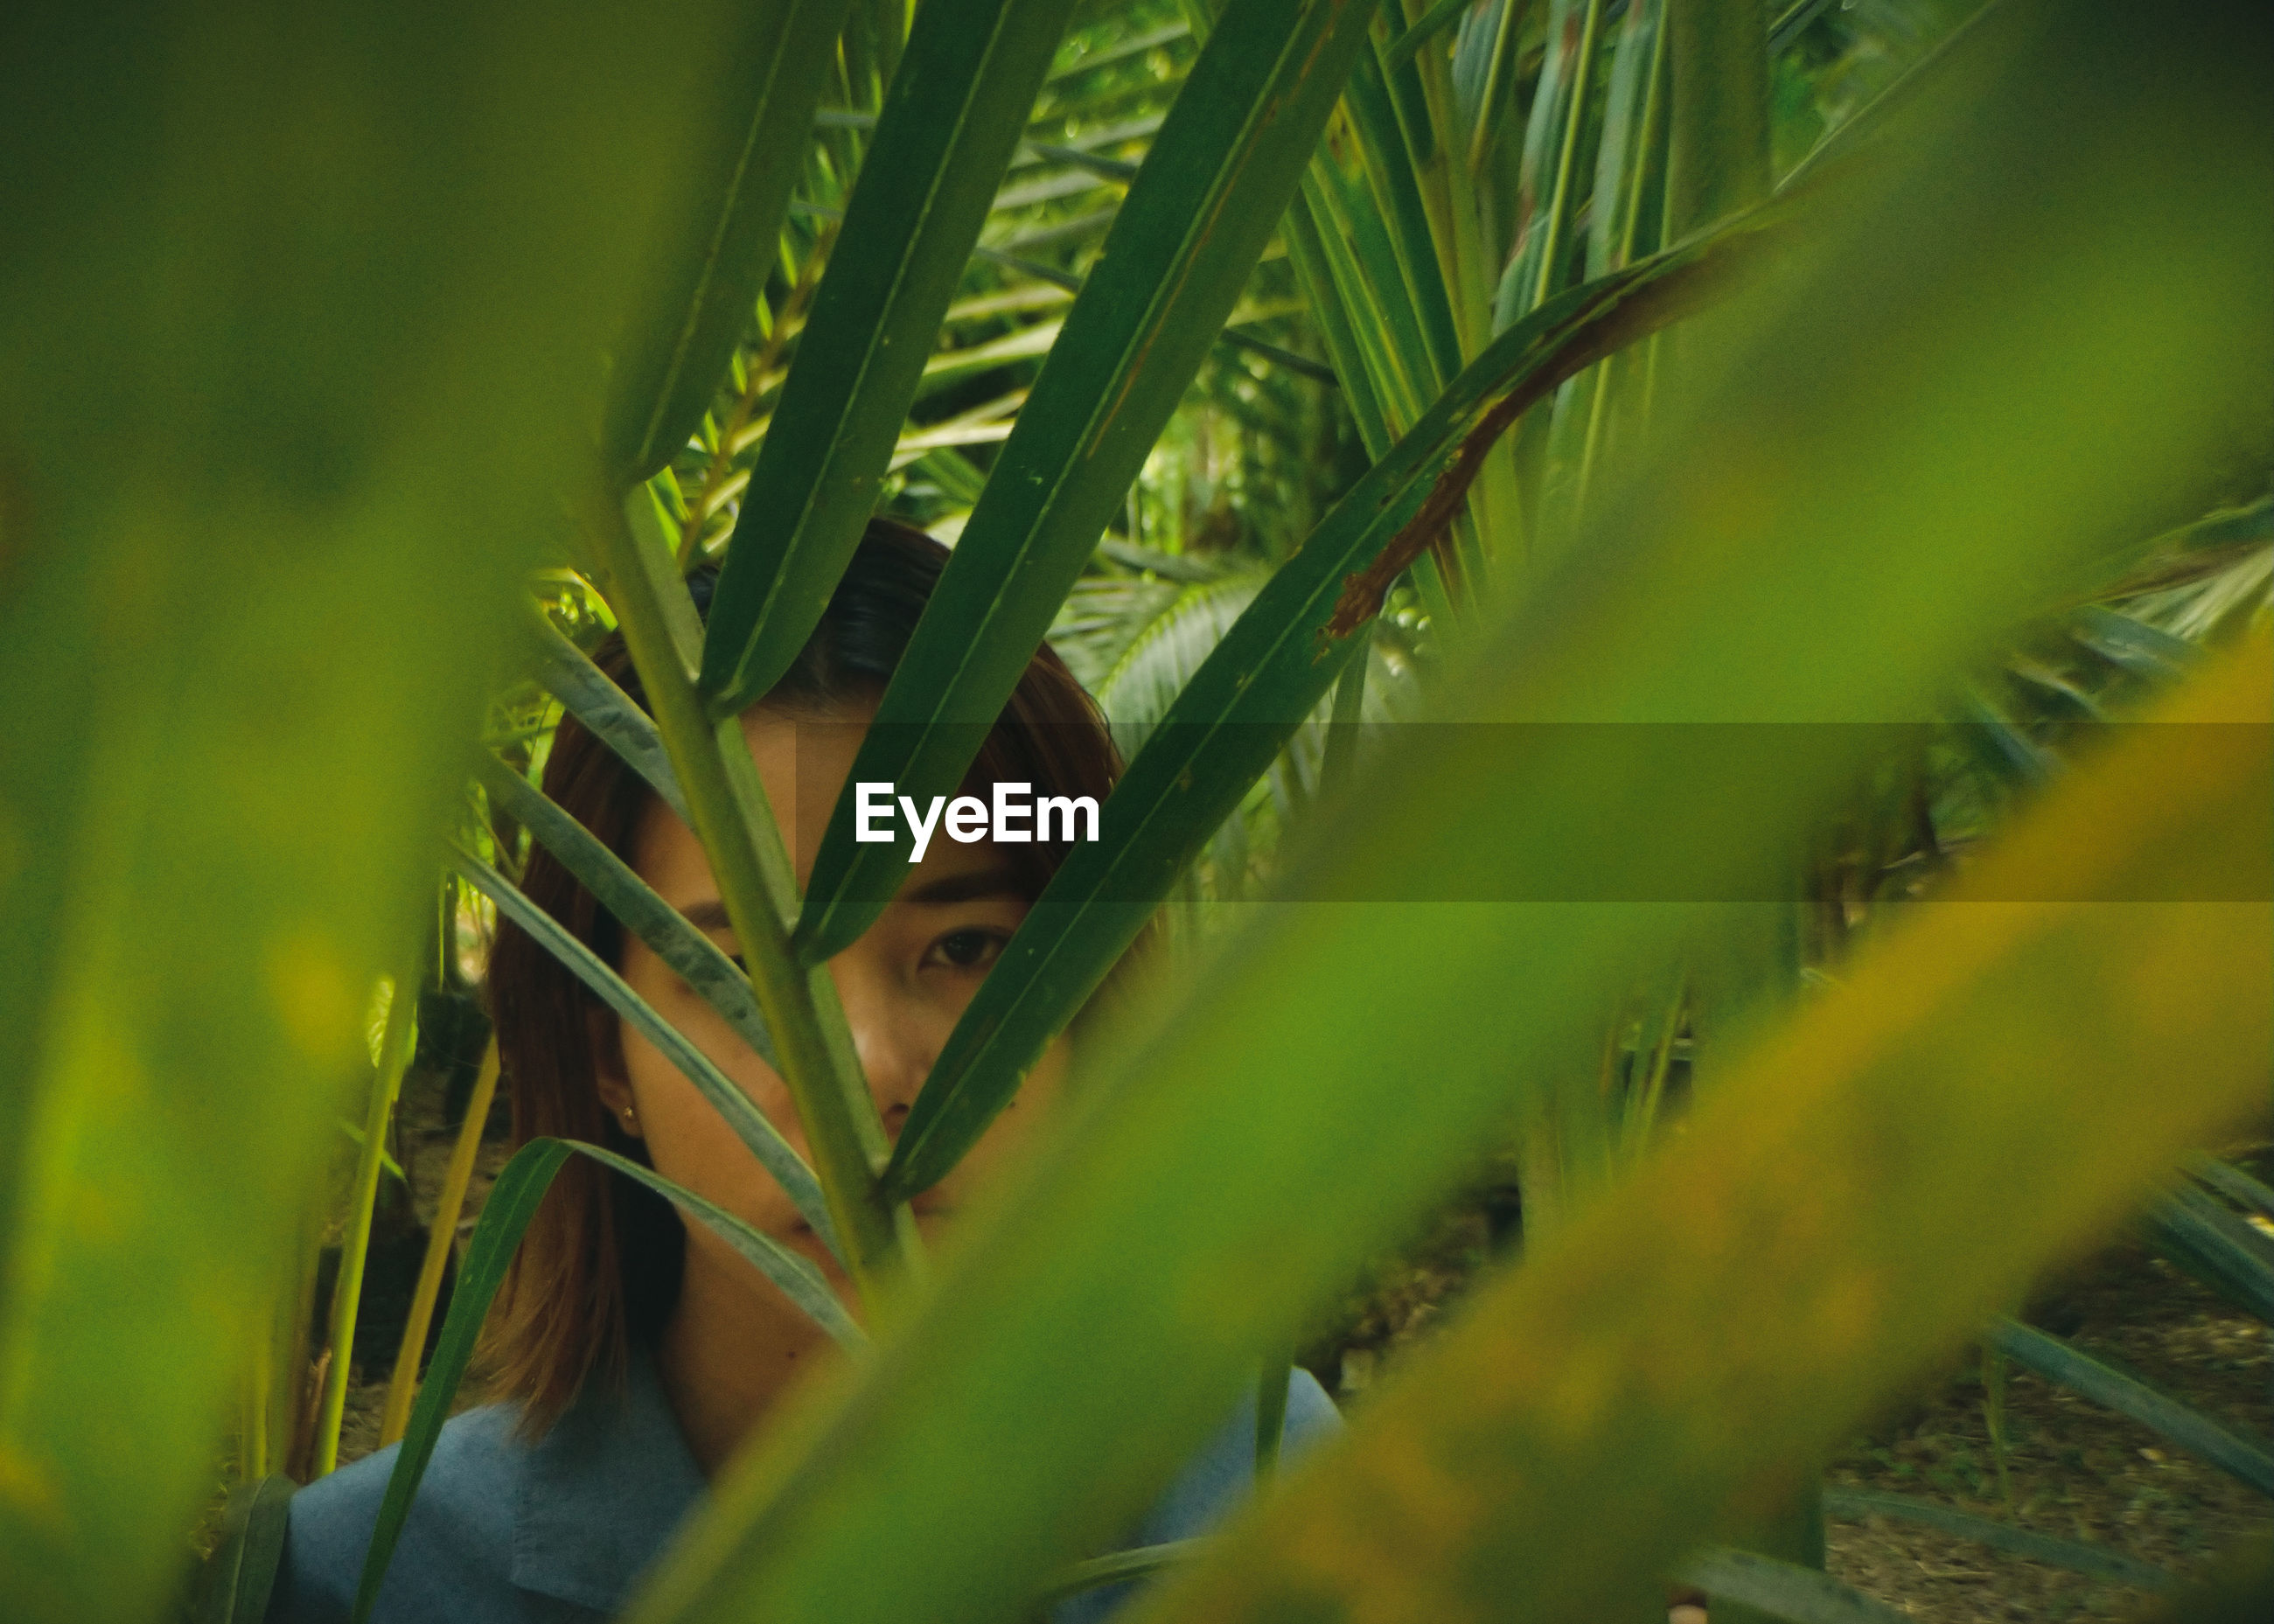 Close-up portrait of woman seen through palm leaves